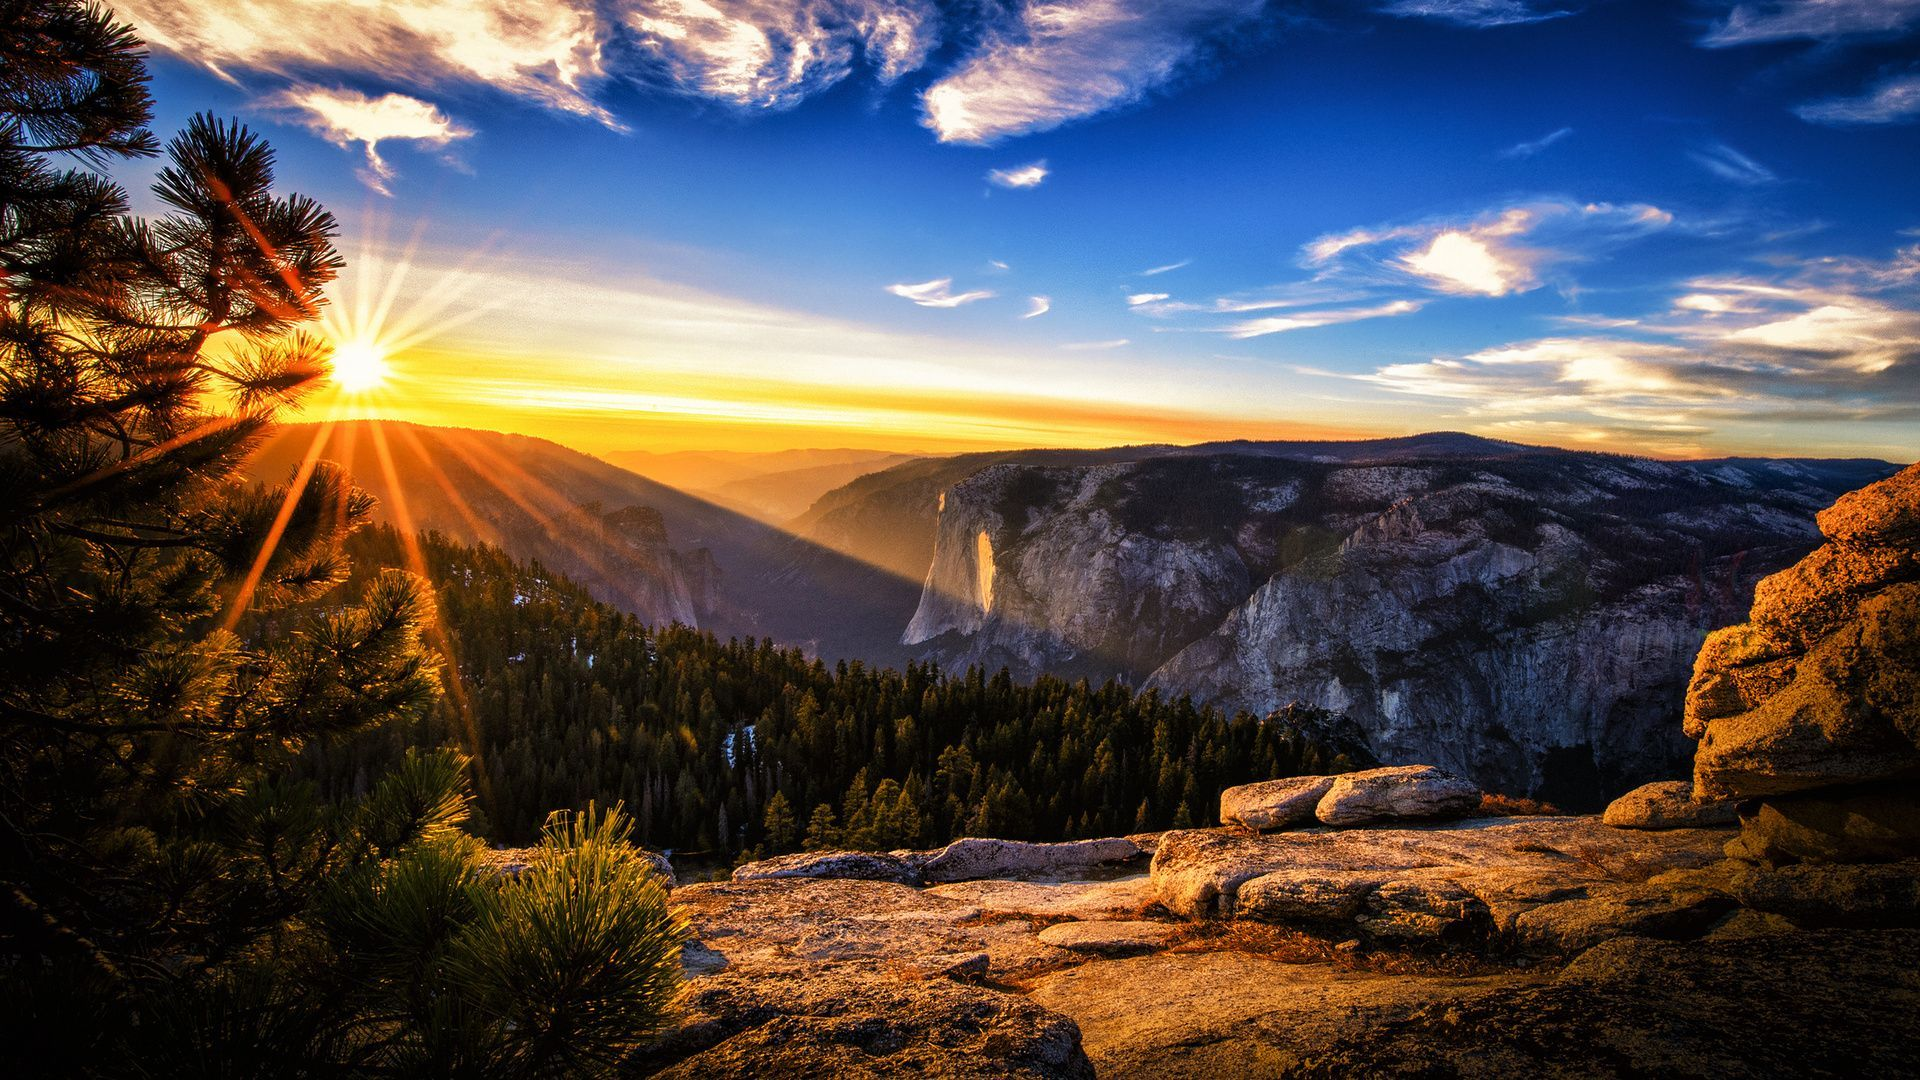 Mountain Sunrise Wallpapers Top Free Mountain Sunrise Backgrounds Wallpaperaccess